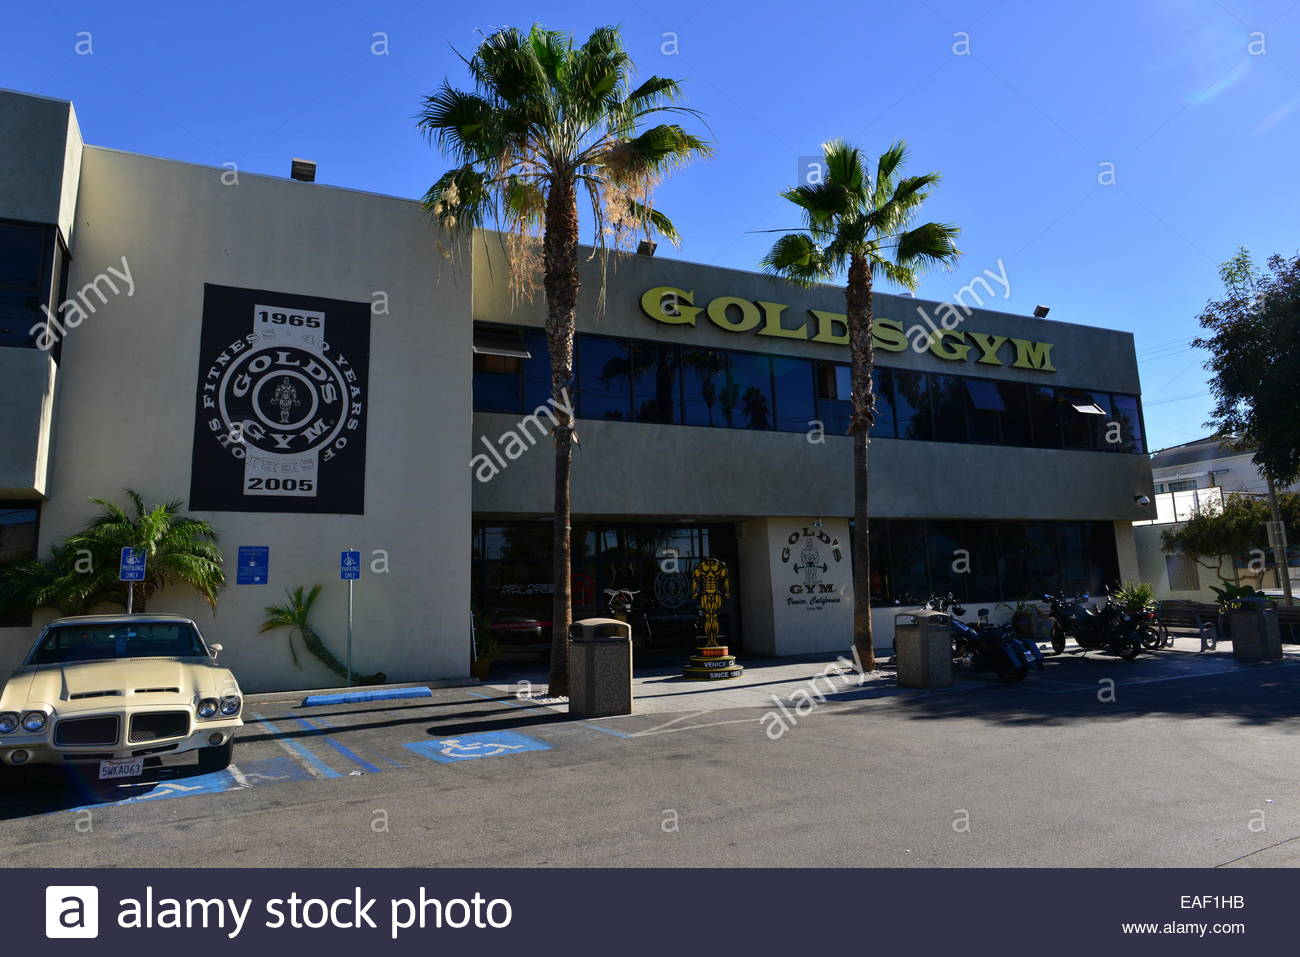 Golds Gym Stock Photos Golds Gym Stock Images   Alamy 1300x957